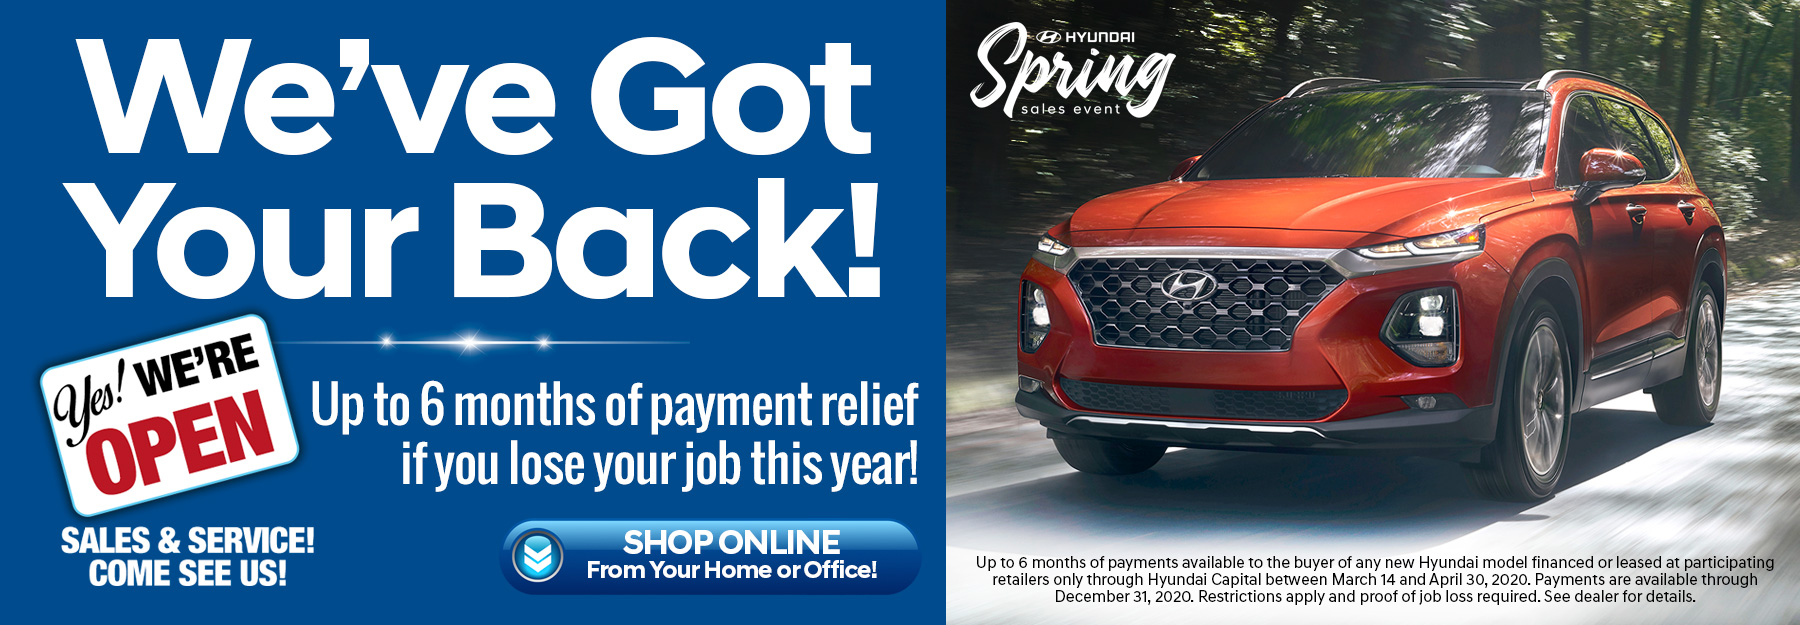 Payment Relief - If you lose your job, Lakeland Hyundai will make your Payments for up to 6 months